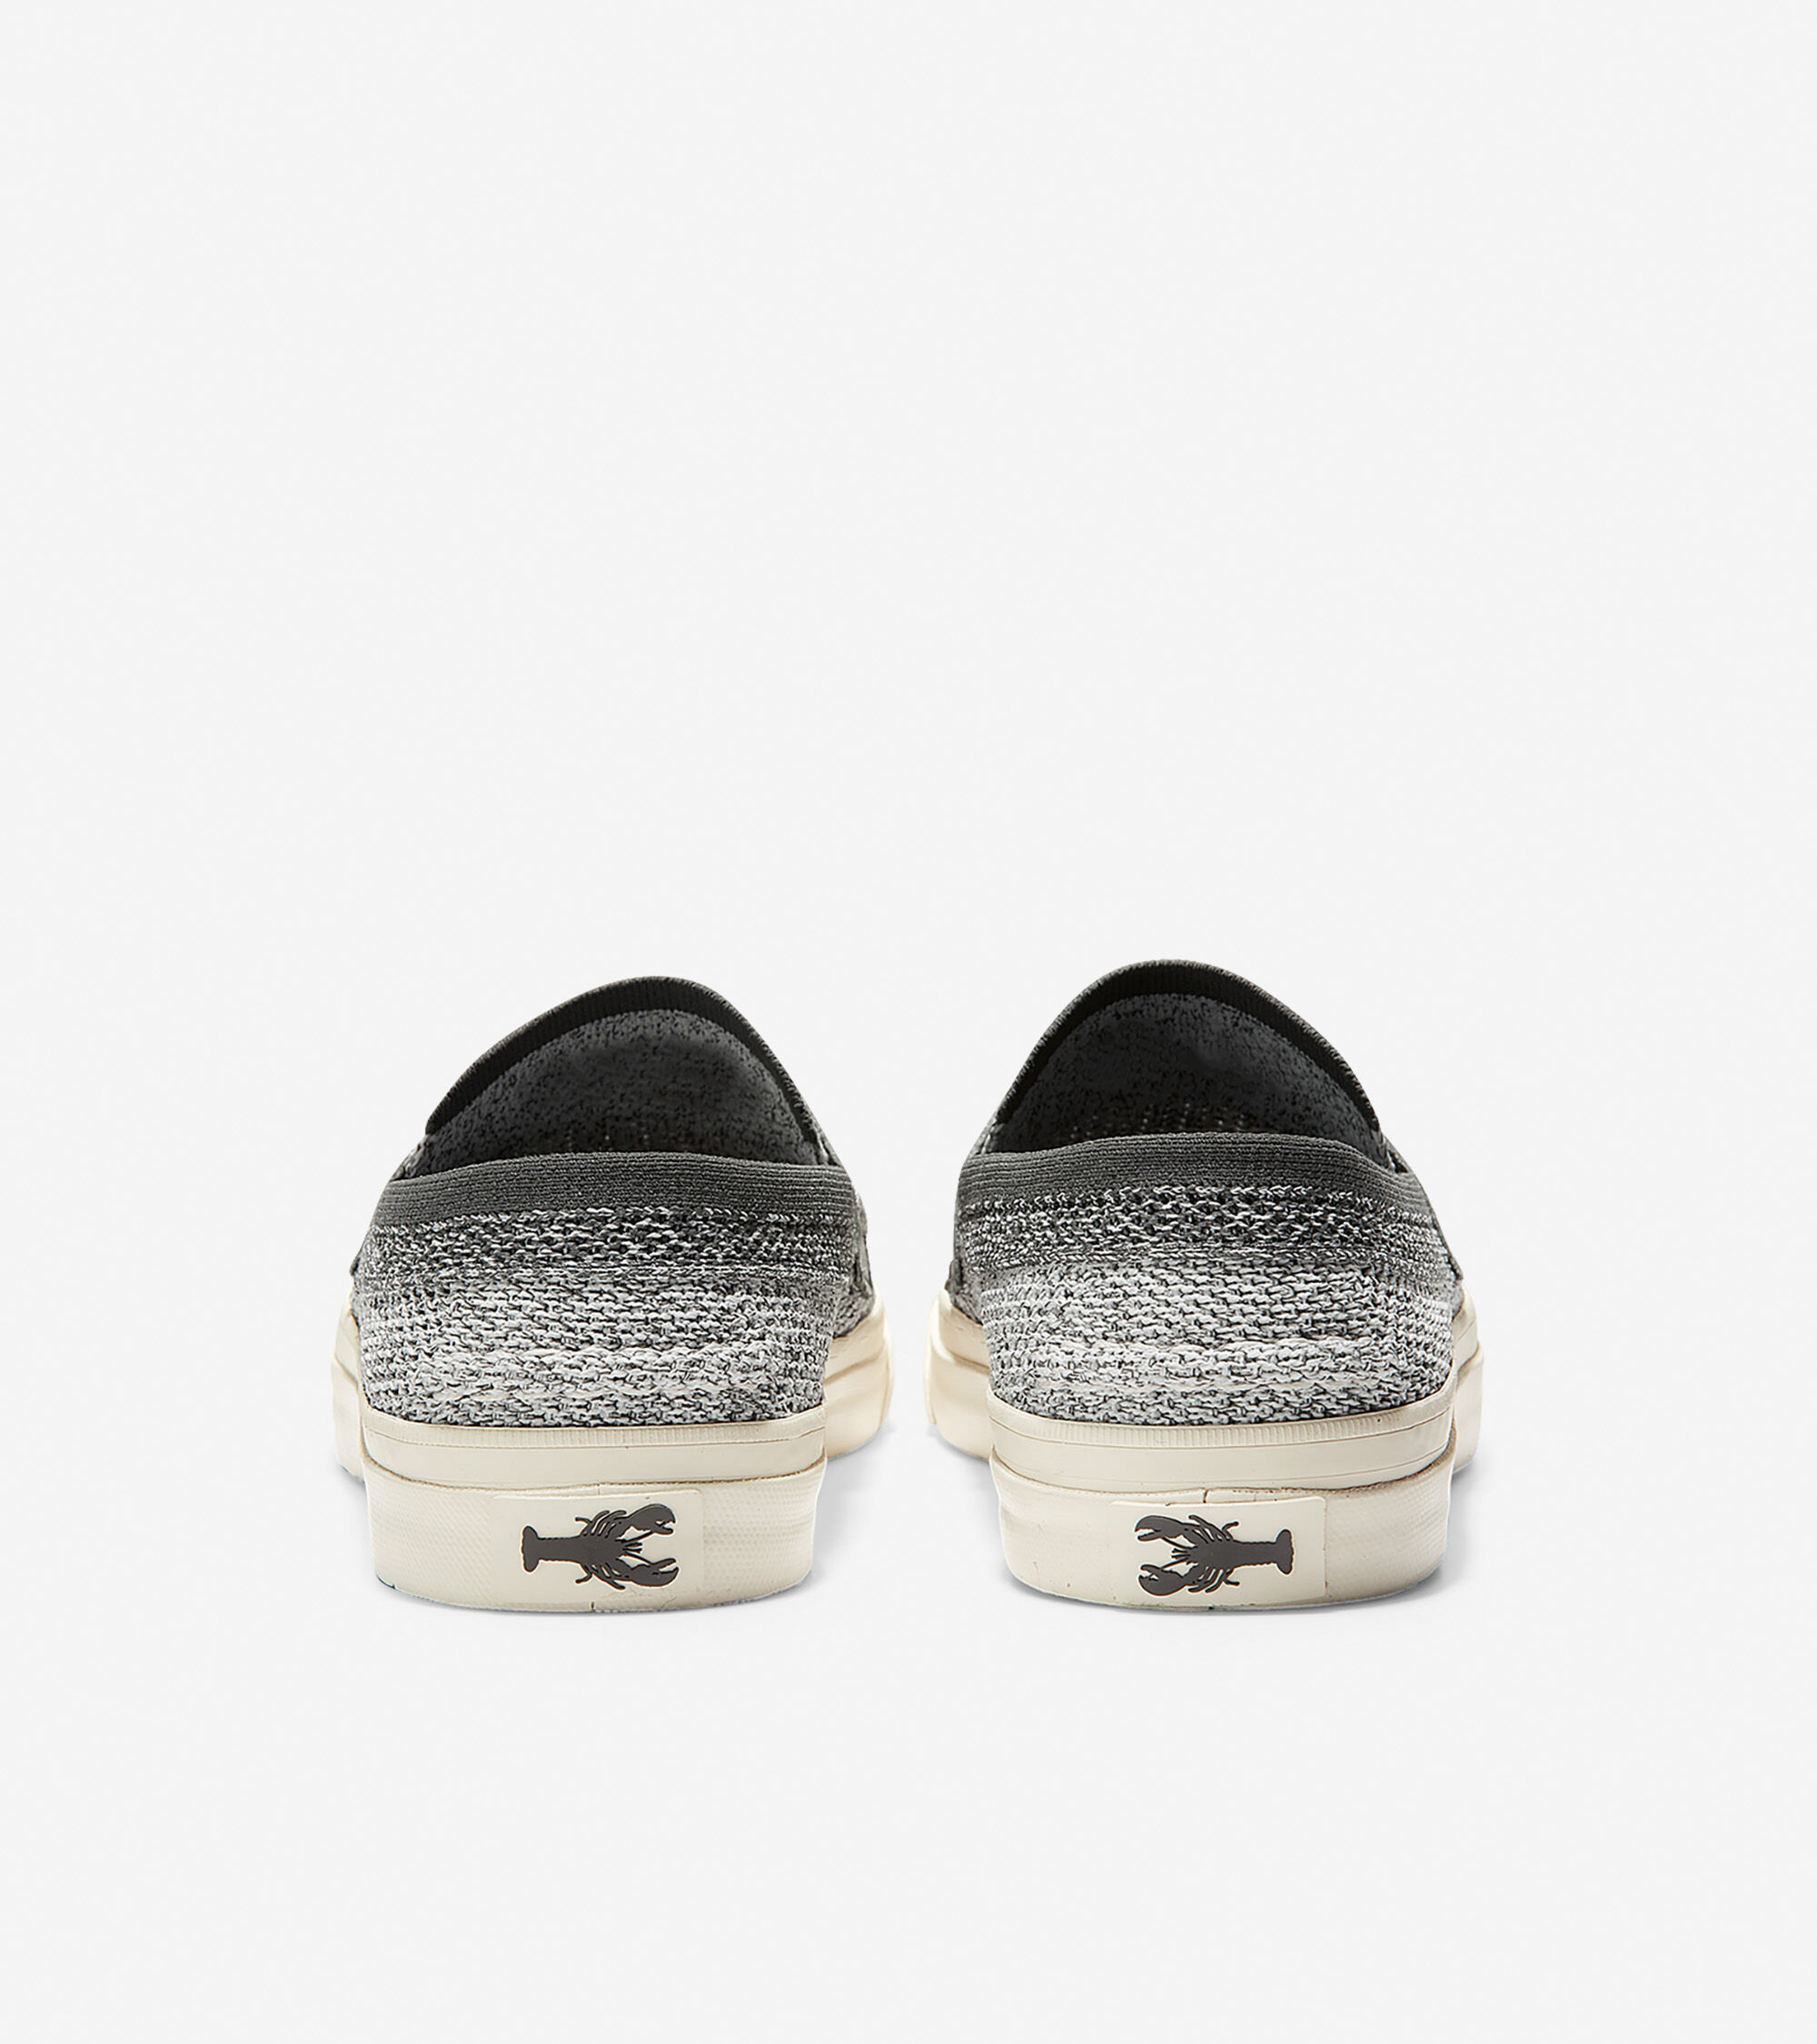 f060f75dc13 Men s Pinch Weekender LX Loafers with Stitchlite in Lunar Rock ...